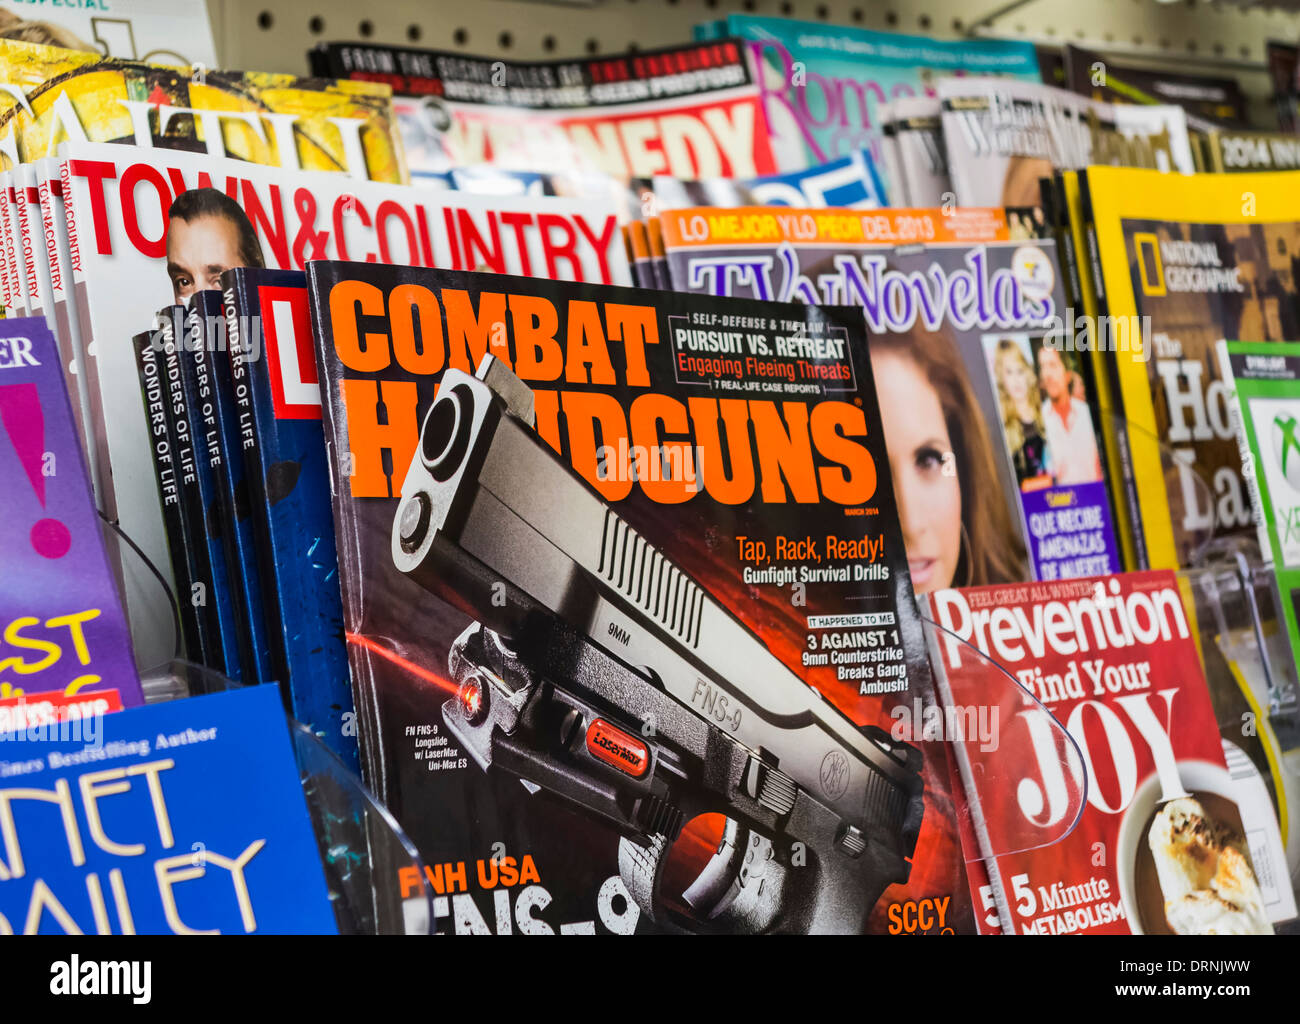 Gun magazine on display in a news store / newsagents, USA - Stock Image